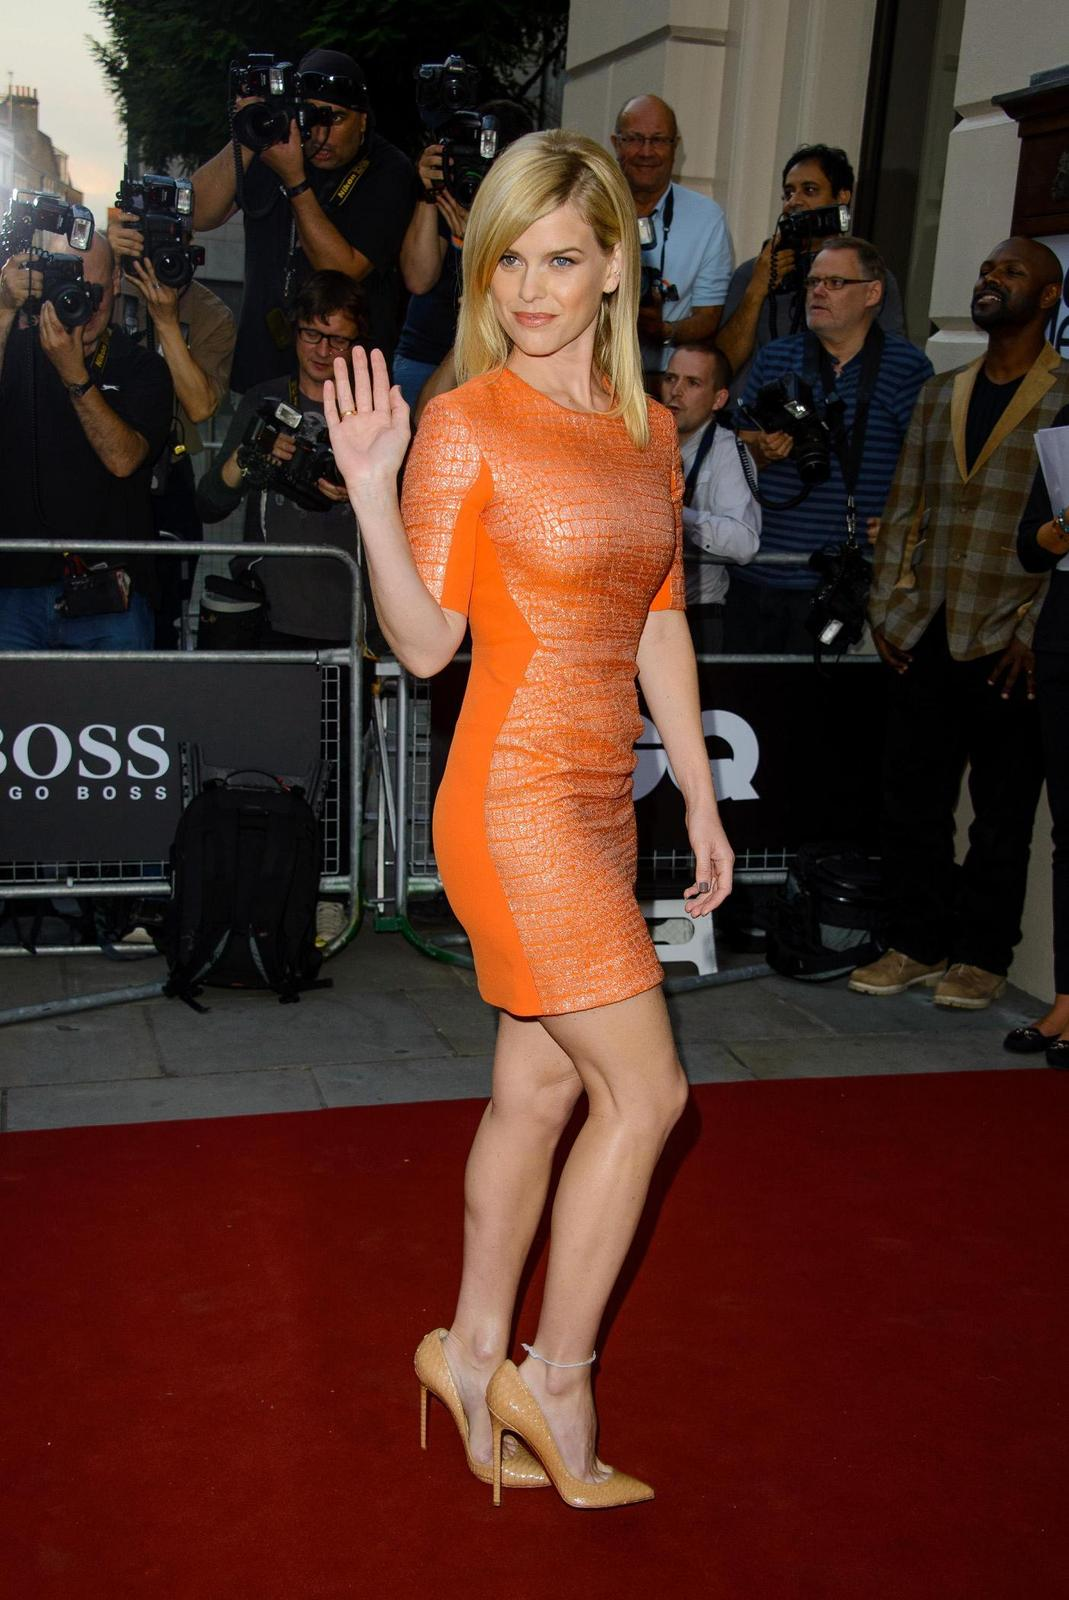 Alice Eve Attends Gq Men Of The Year Awards In London